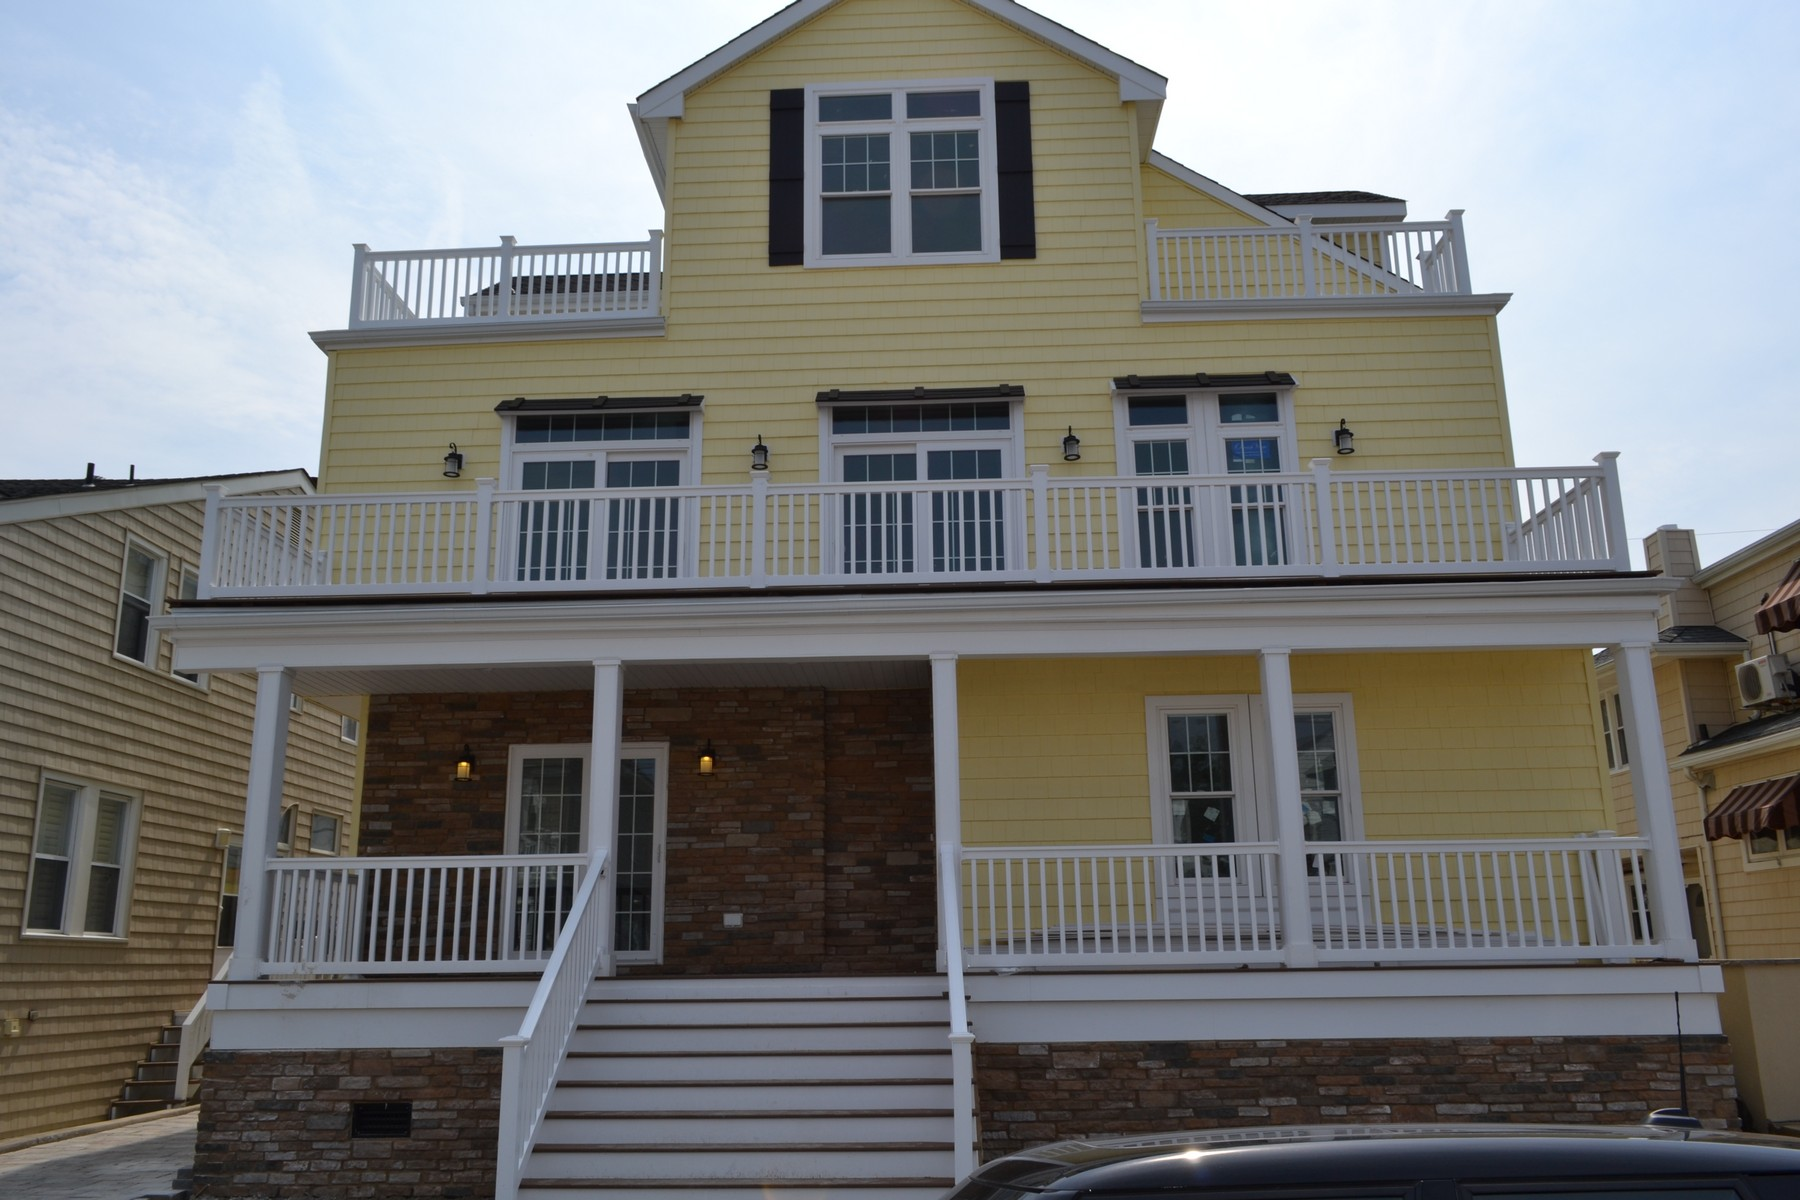 Maison unifamiliale pour l Vente à 102 South Troy Ave Ventnor City, New Jersey 08406 États-Unis